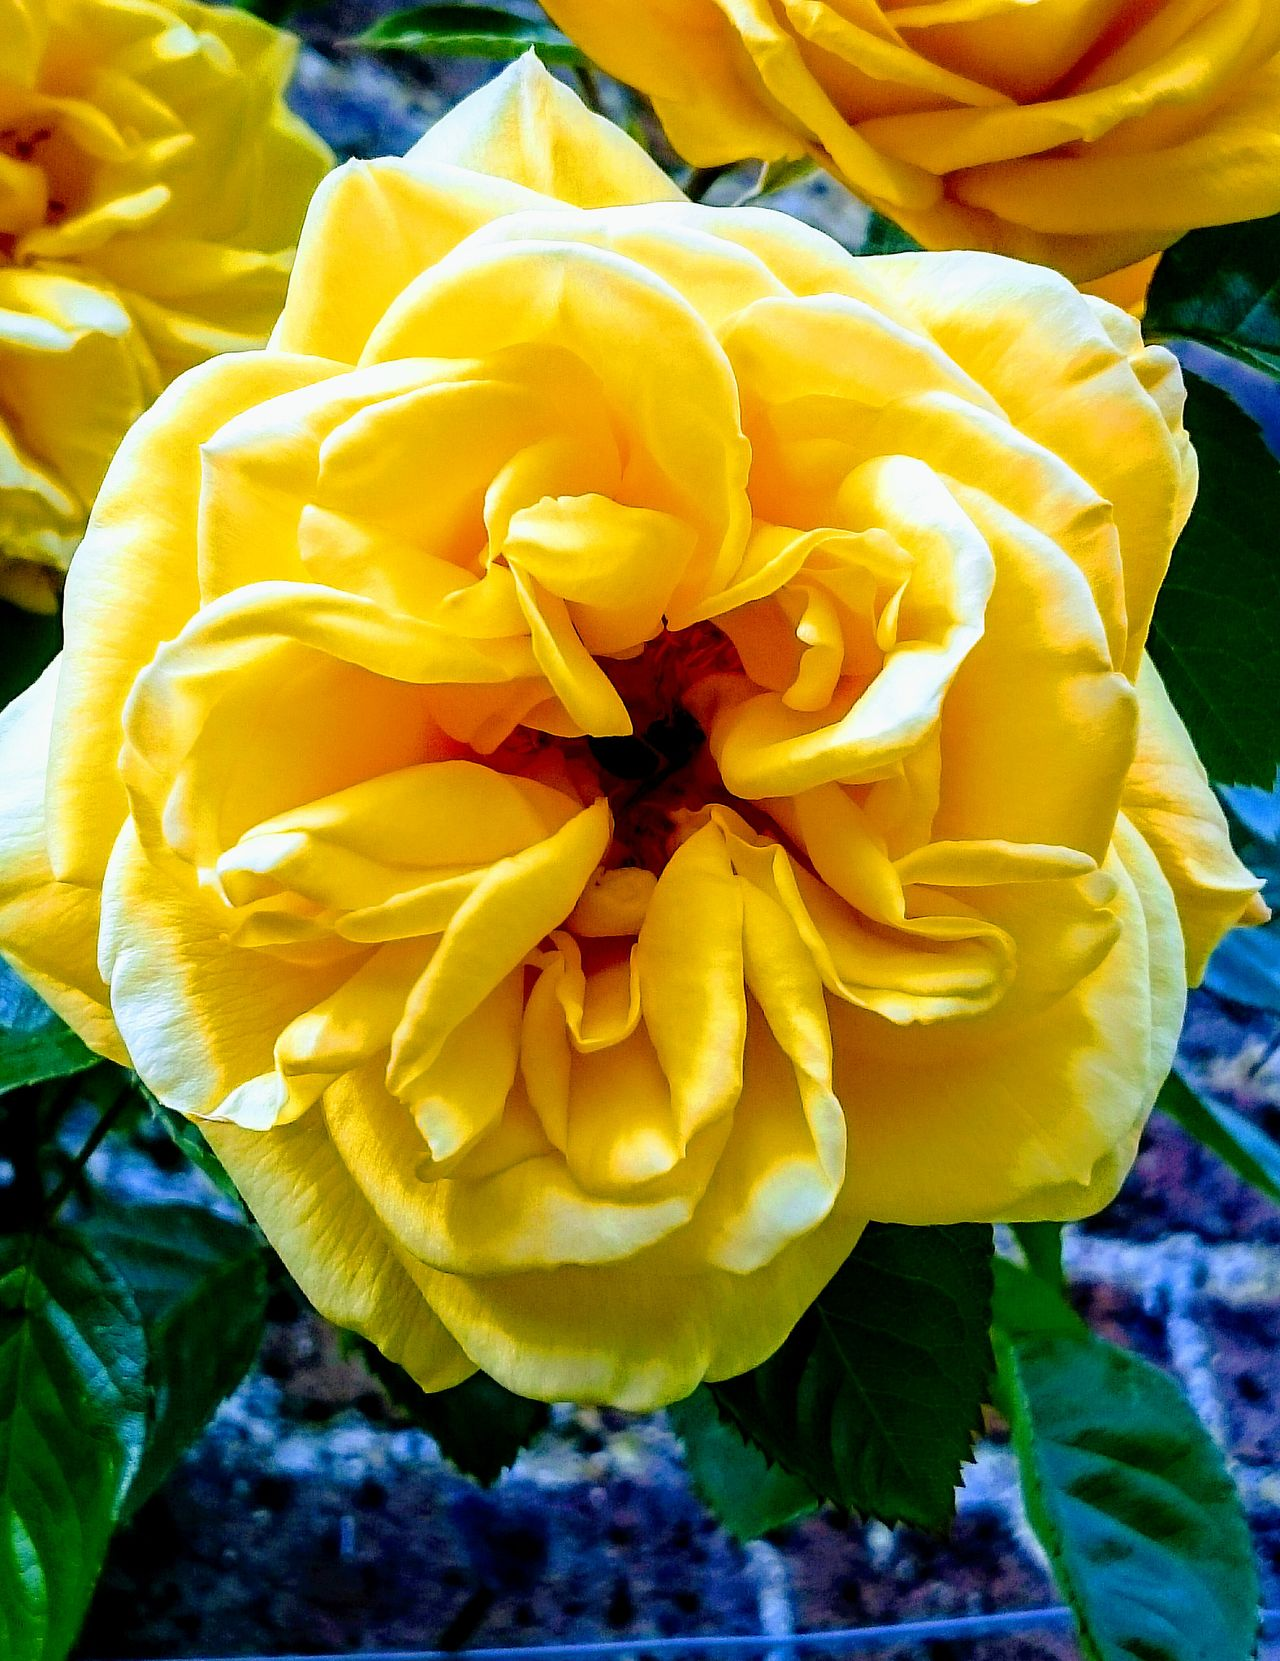 Flower Flower Head Yellow Petal Outdoors Beauty In Nature Yellow Flower Yellow Rose Rose🌹